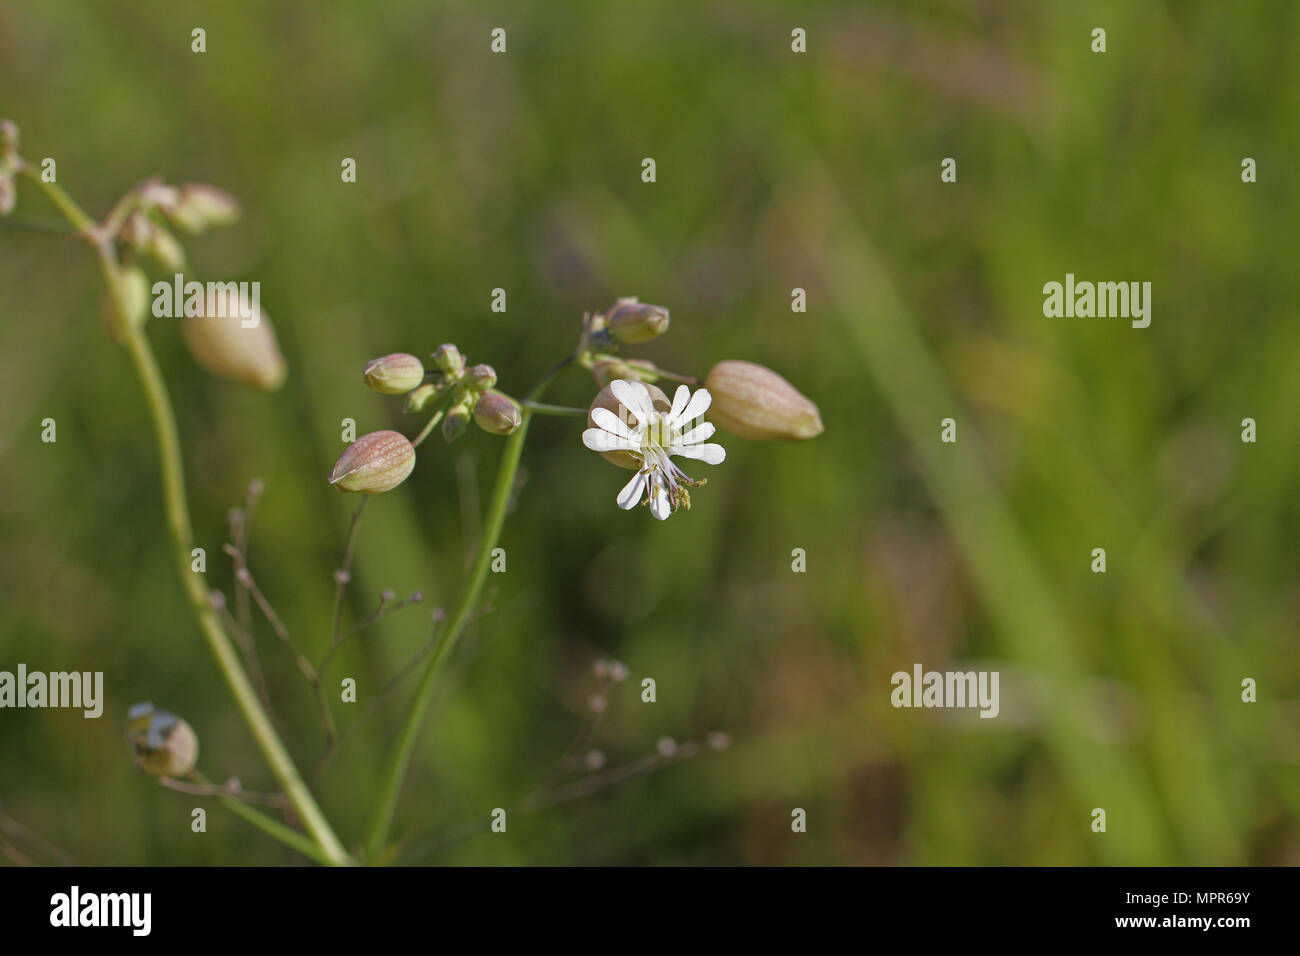 bladder campion or maidens tears Latin silene vulgaris from the pink family caryophyllaceae edible wild flower used in risotto in some parts of Italy - Stock Image